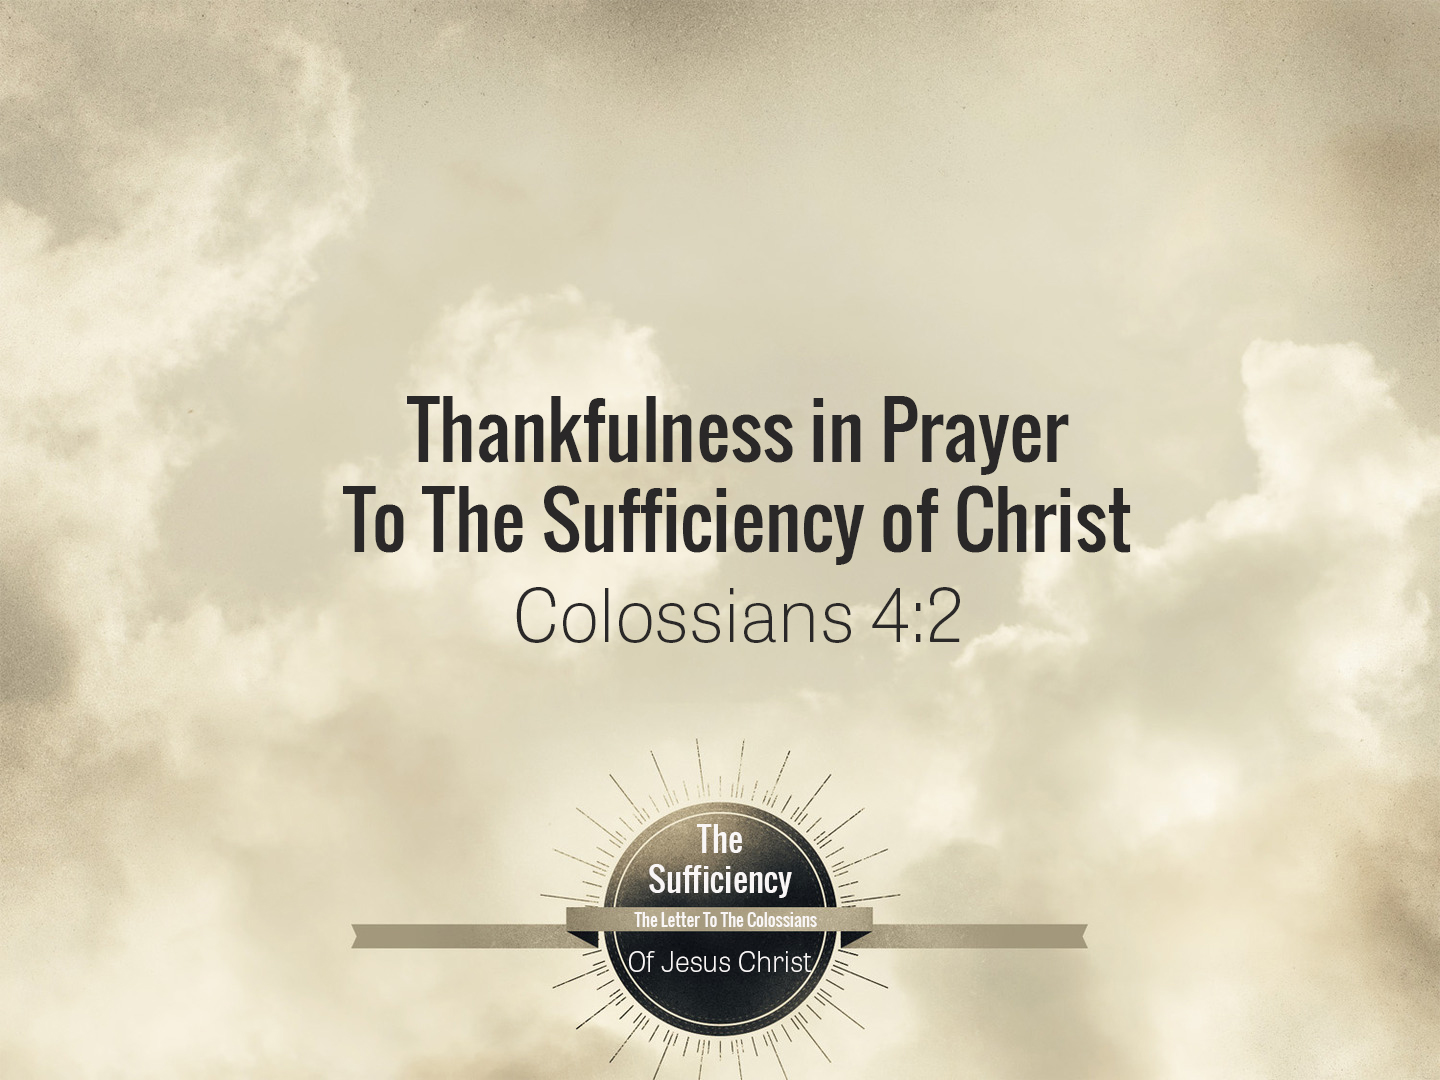 Colossians 4v2 Thankfulness In Prayer To The Sufficiency Of Christ